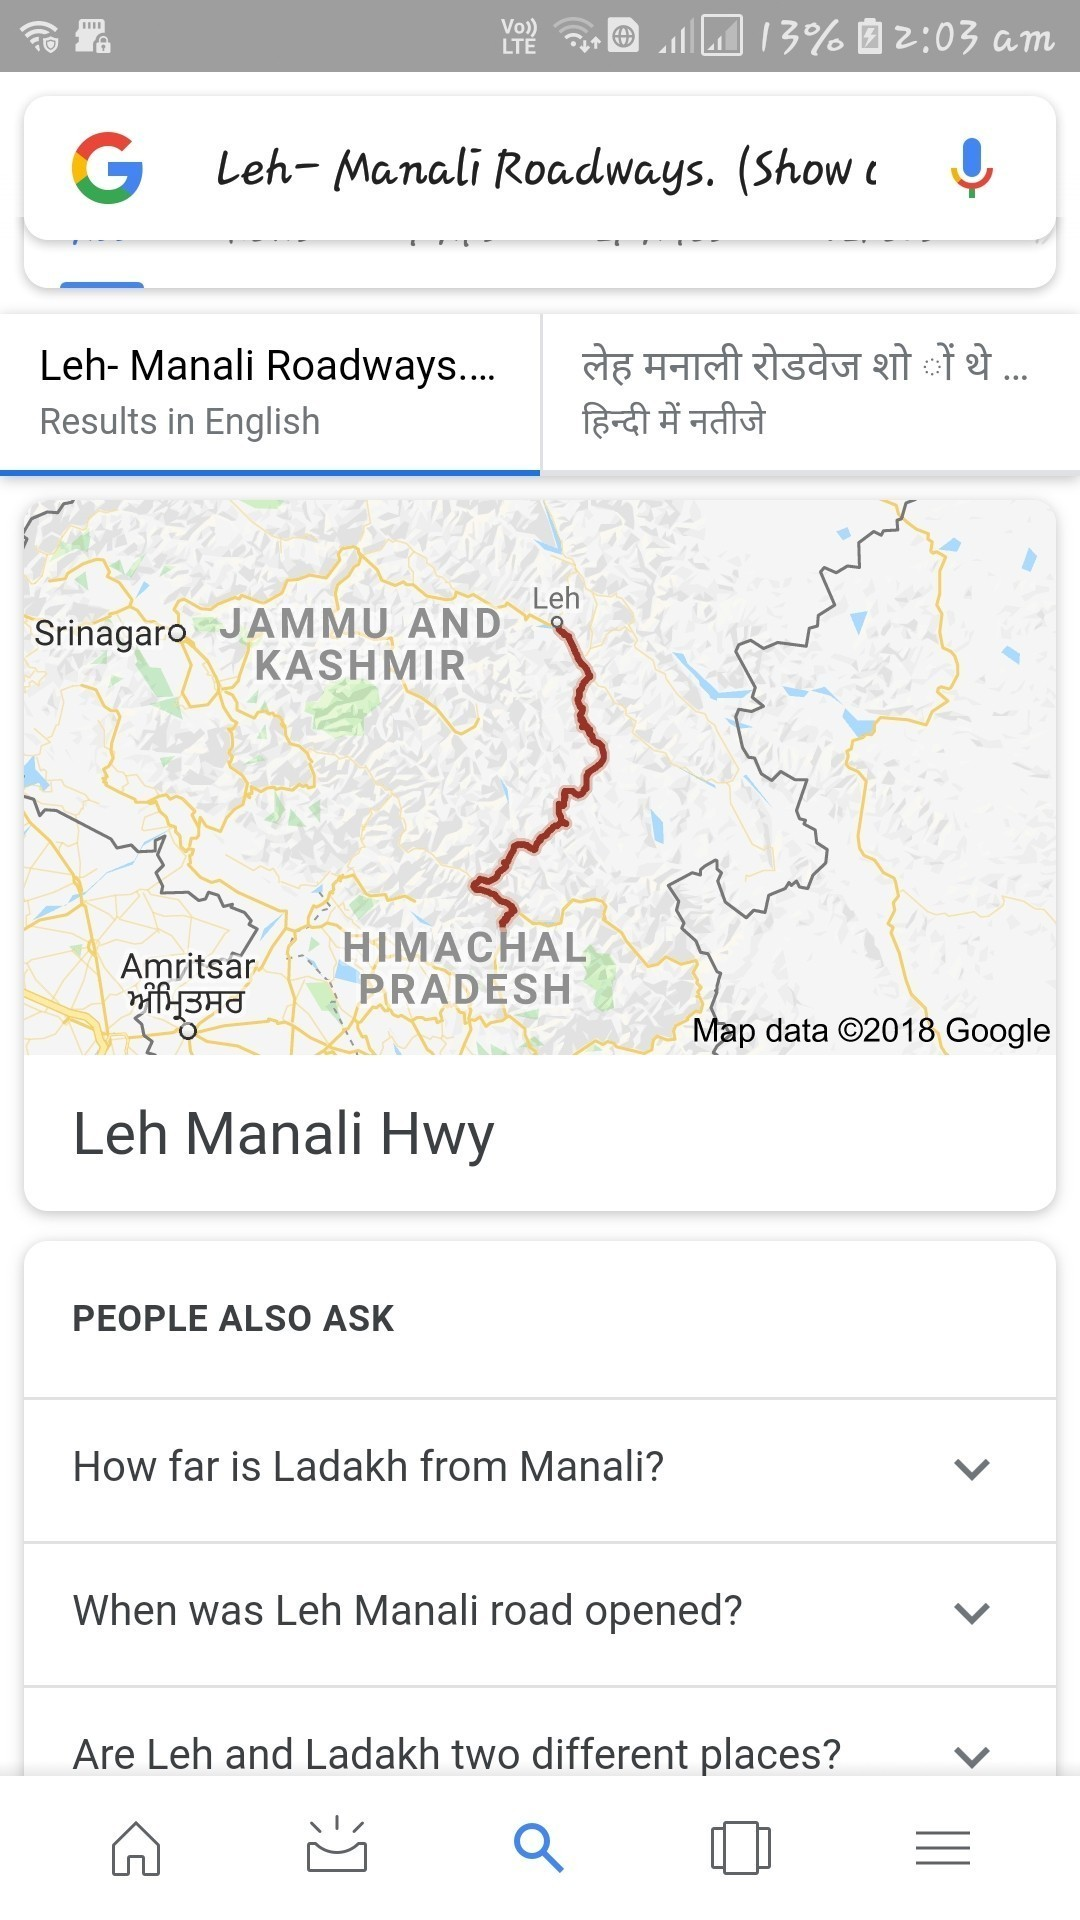 Manali India Map.Leh Manali Roadways Show On The Map Of India Brainly In